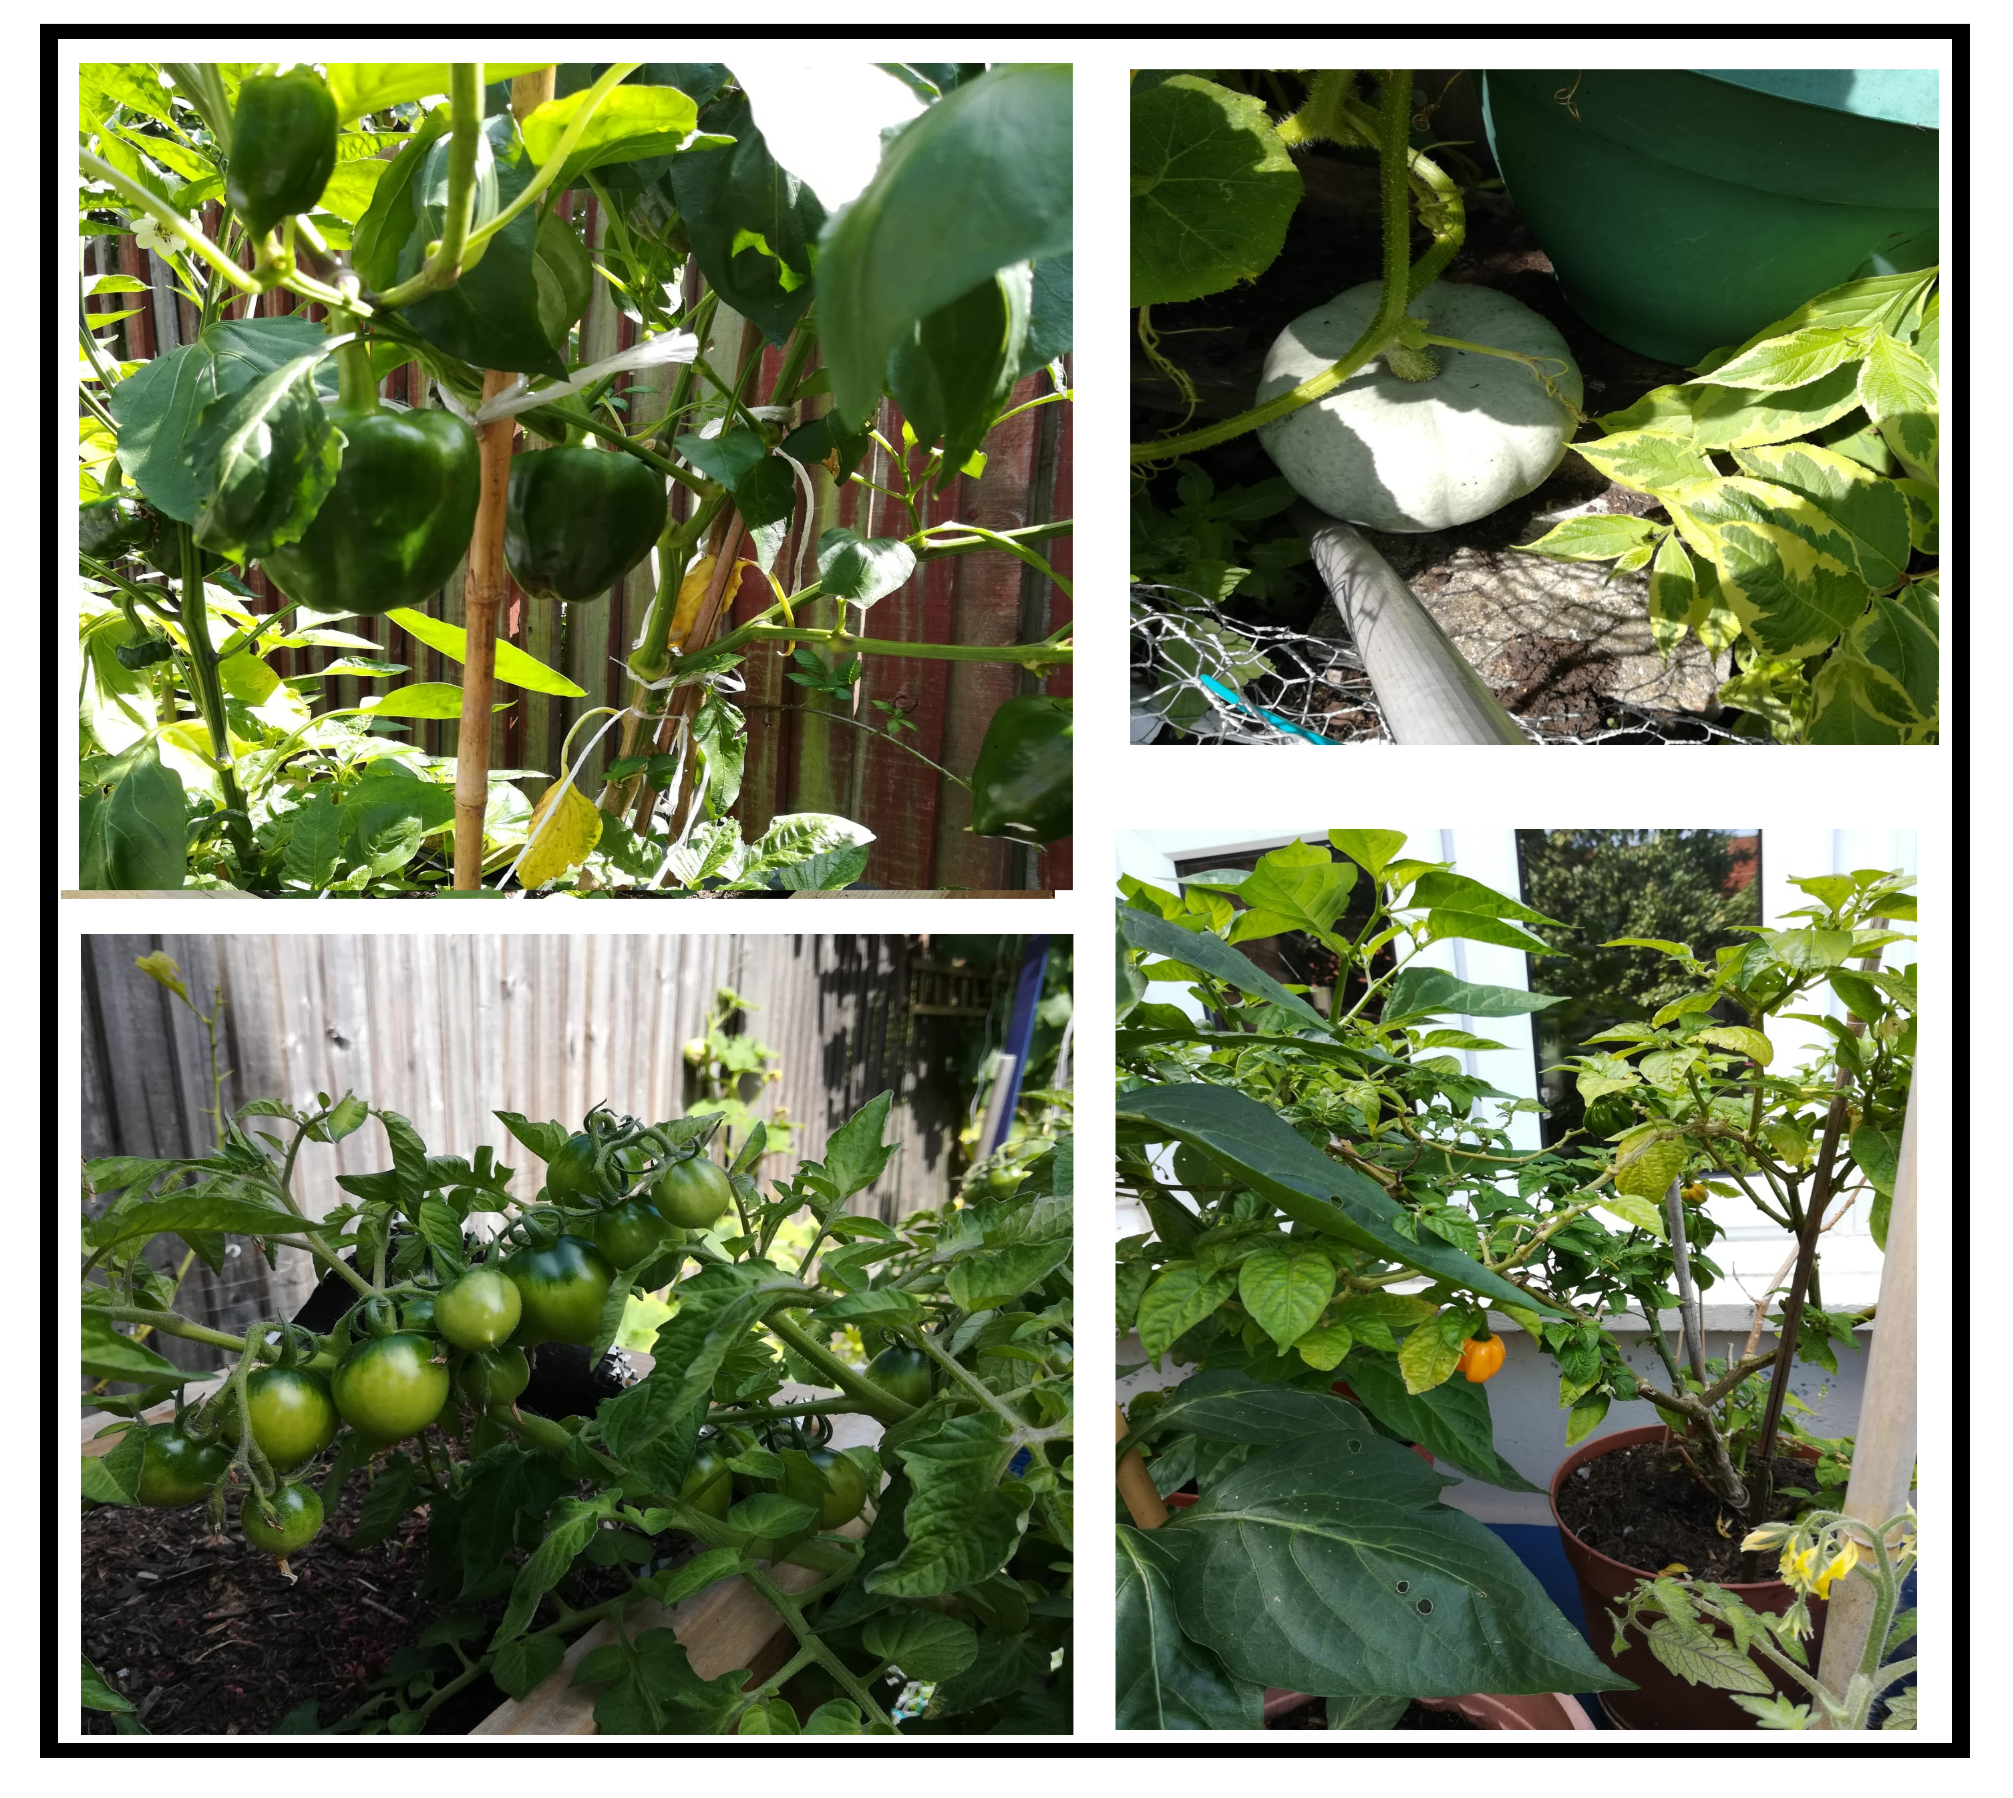 Vegetables growing - tomatoes, green peppers, scotch bonnet and pumpkins